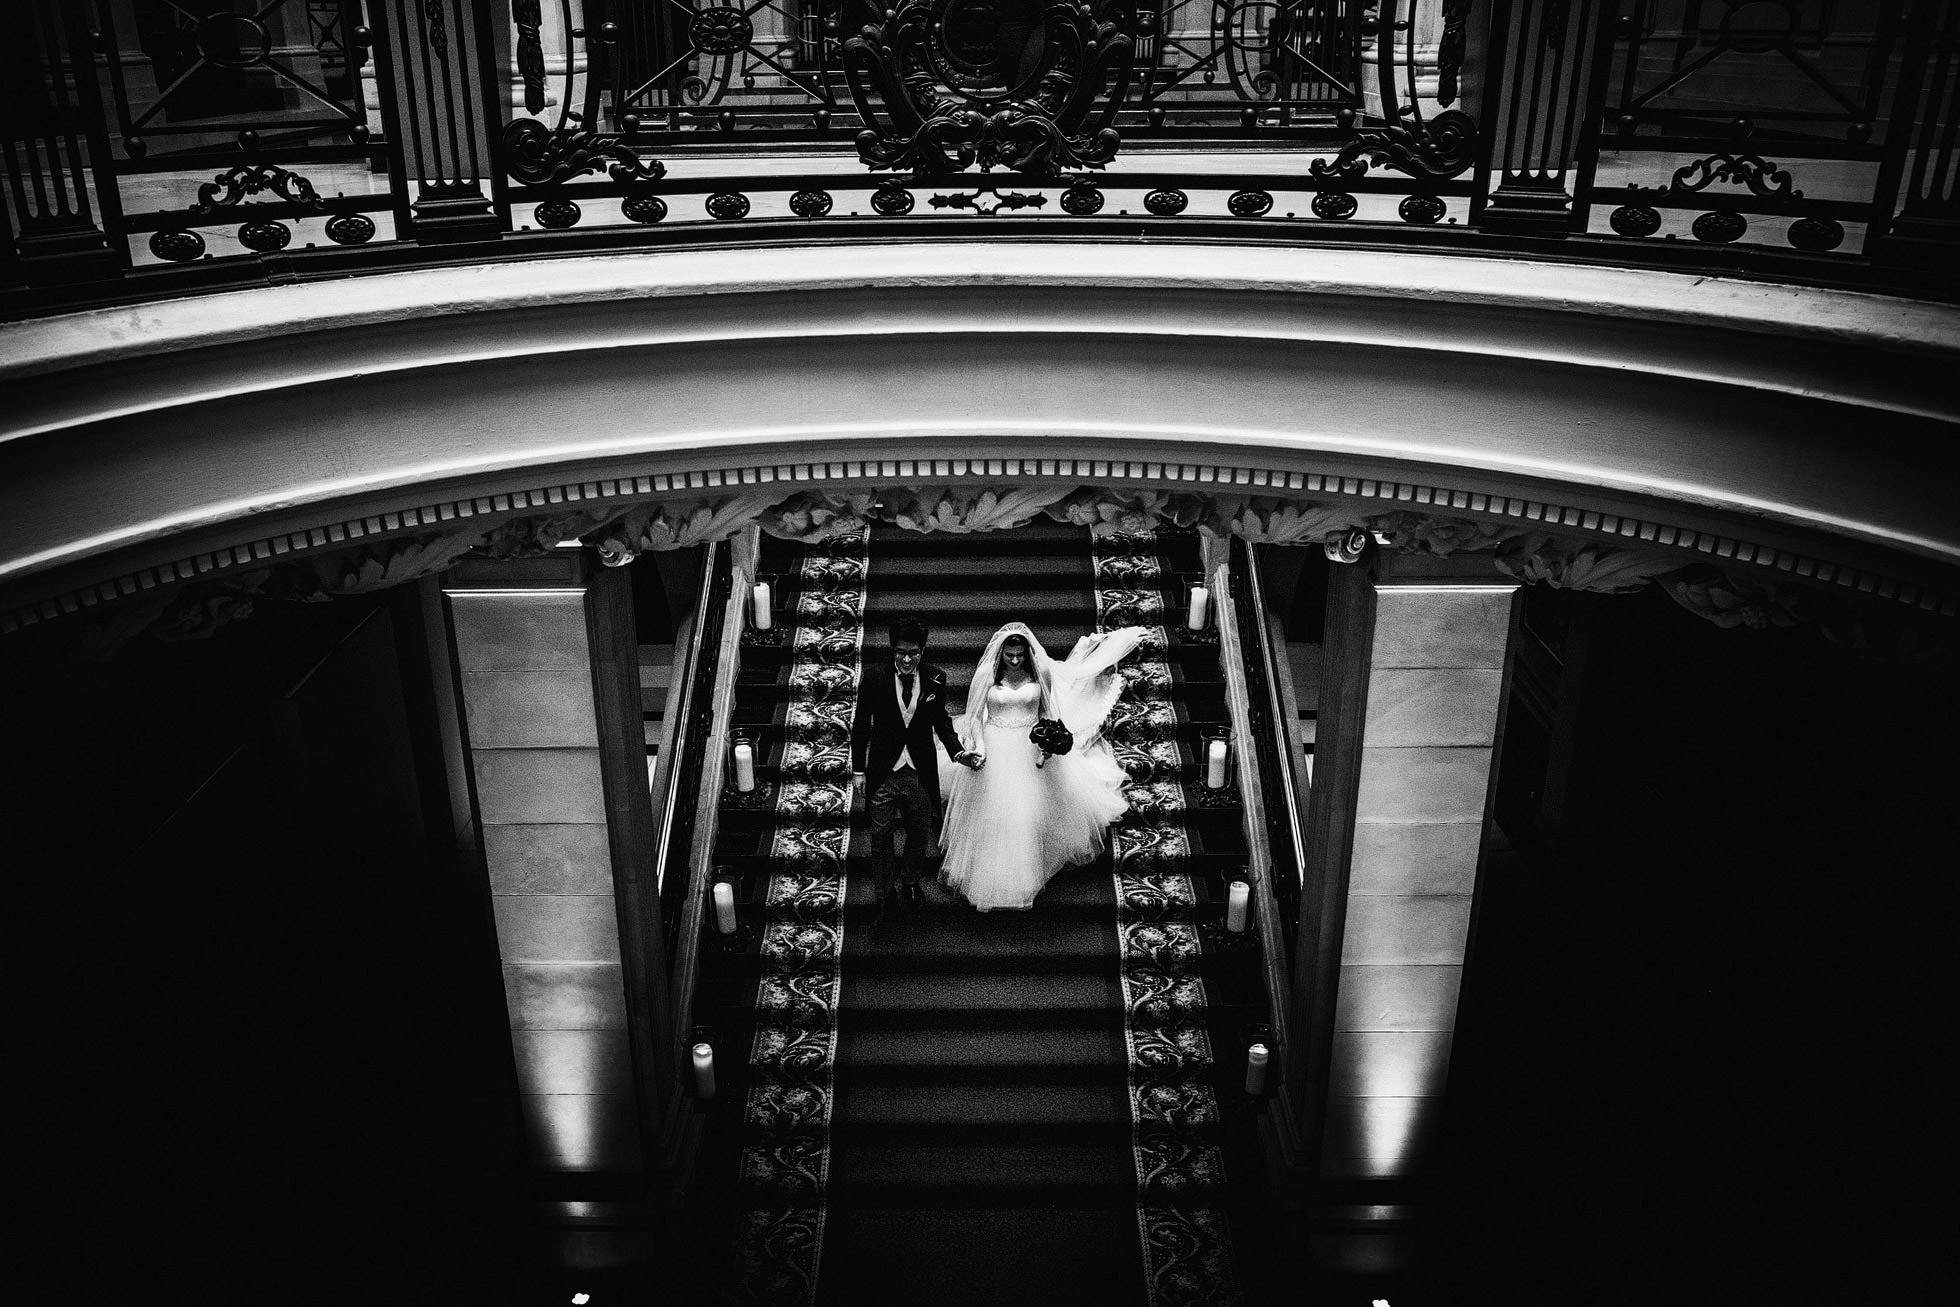 One Great George Street Wedding Photographer